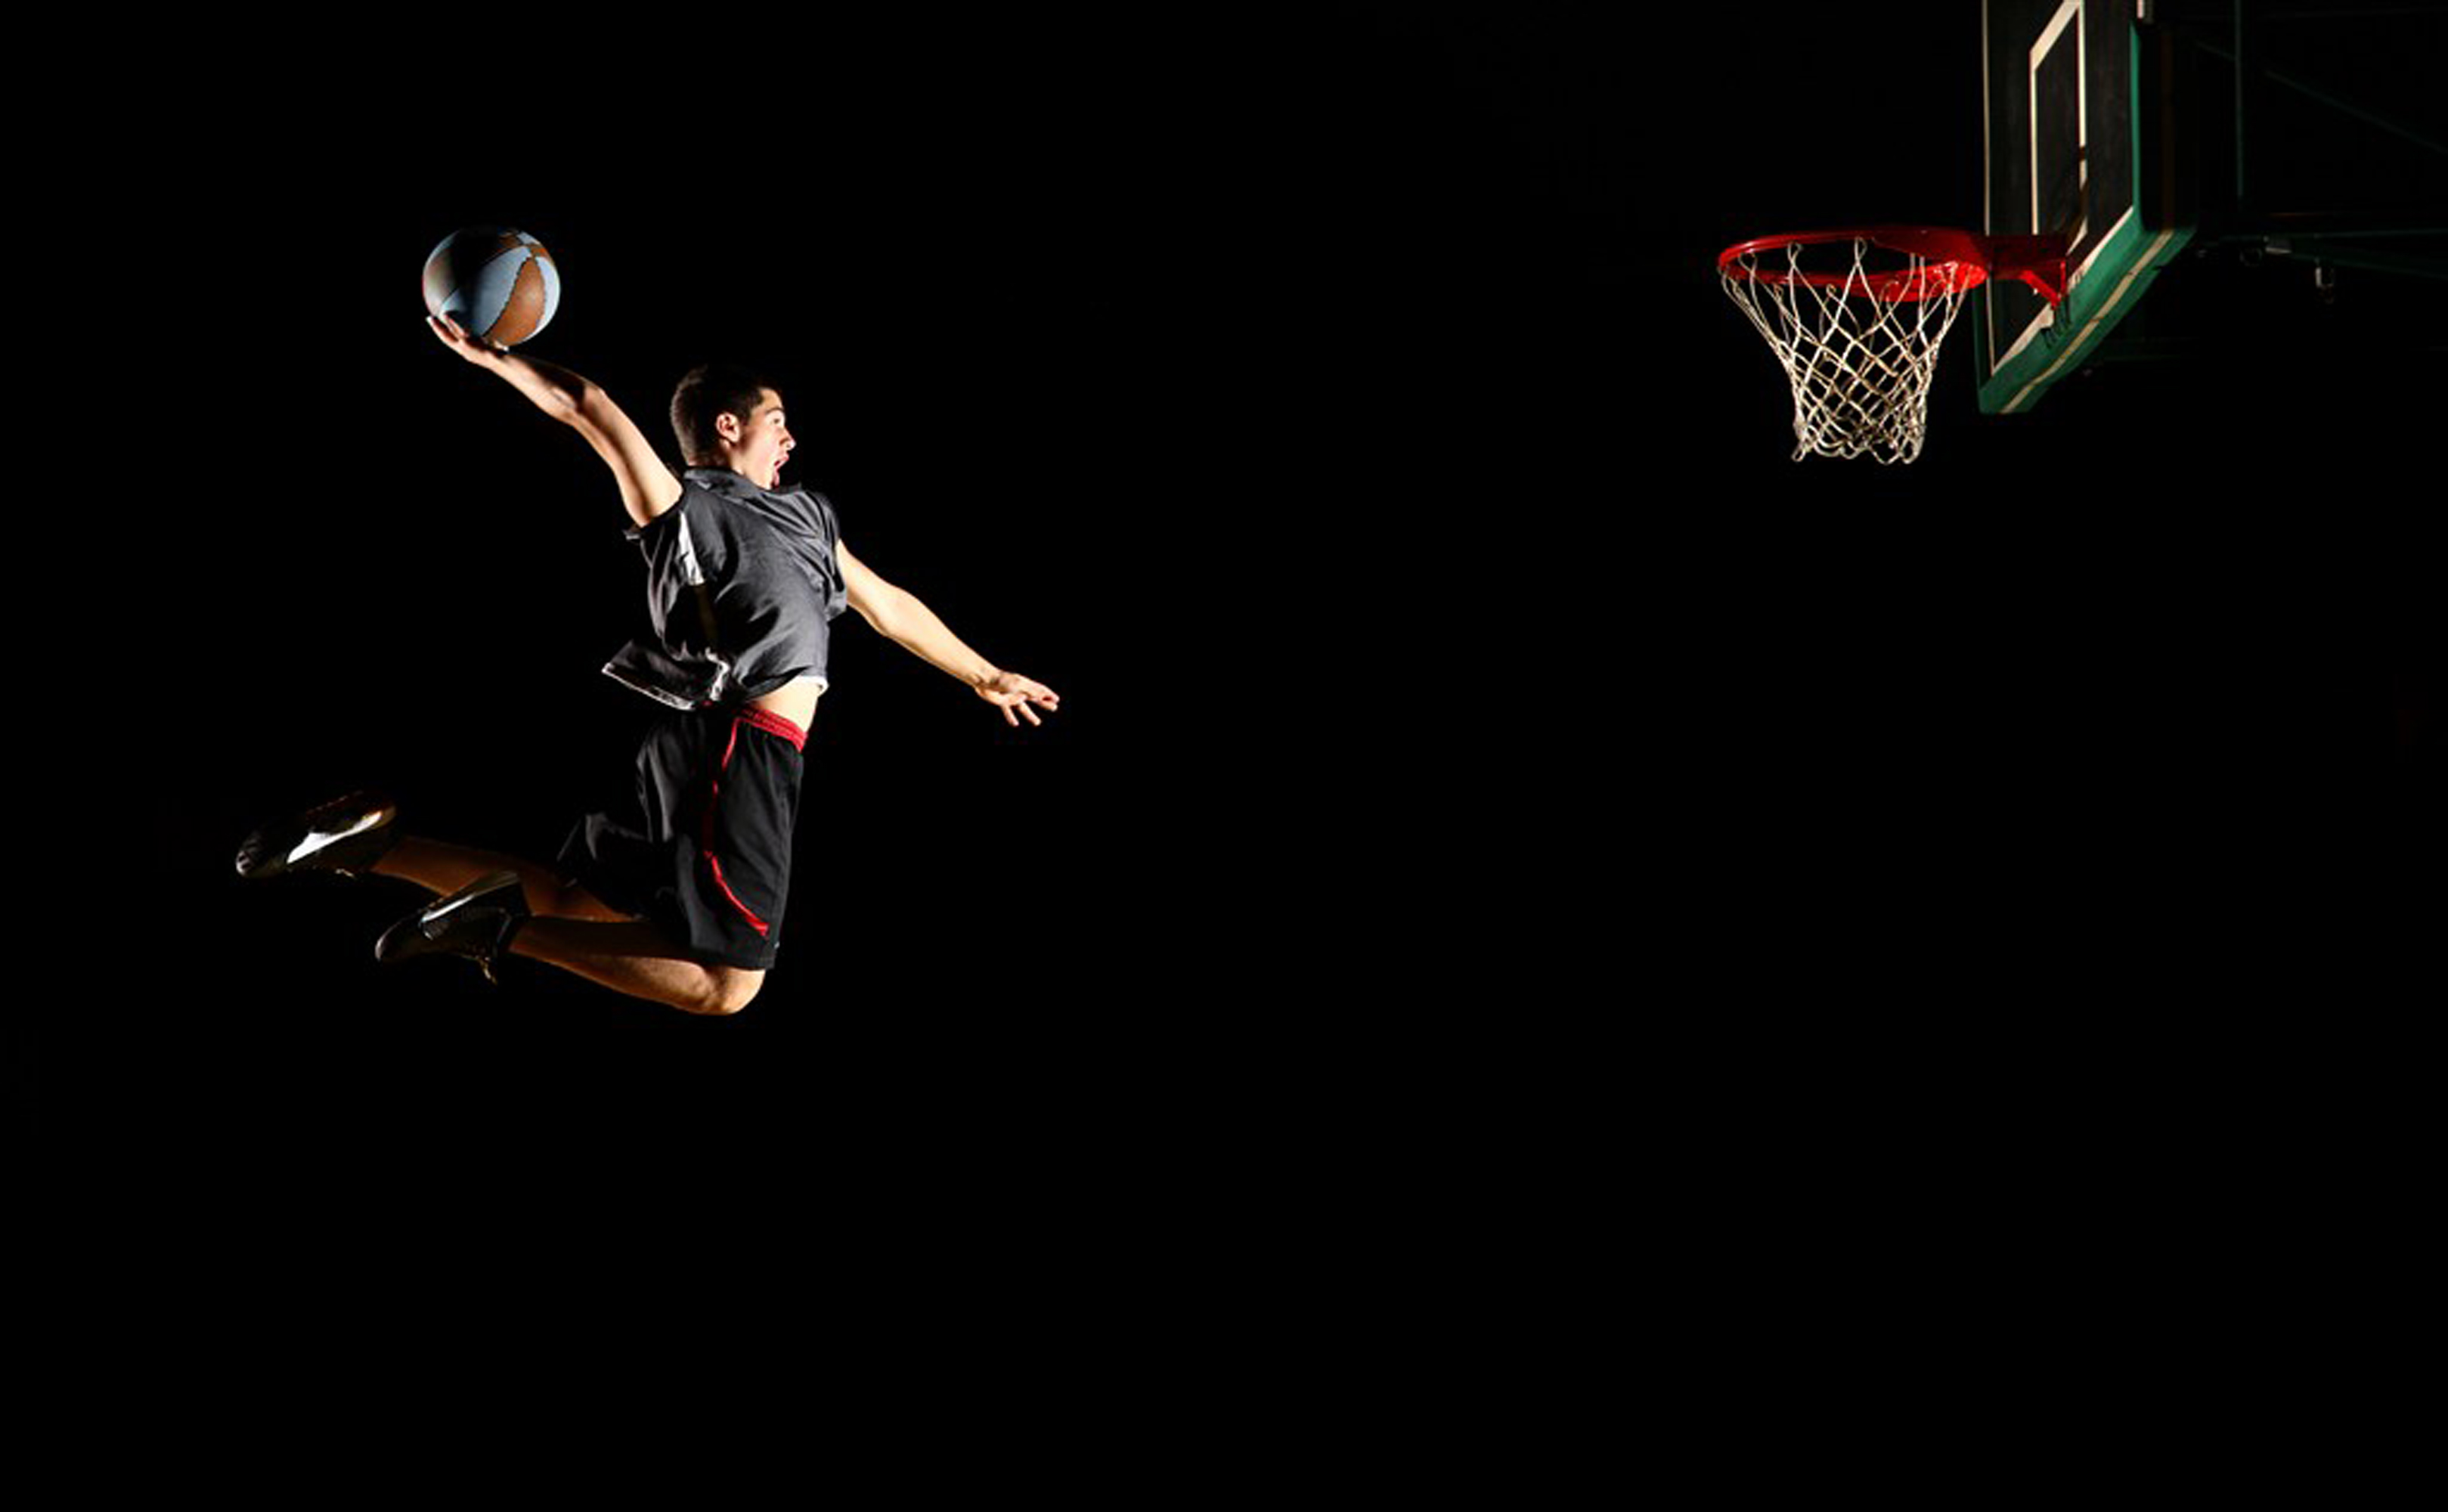 Playing Basketball Dunk Figure Dunk Basketball Court Sports Background Image For Free Download